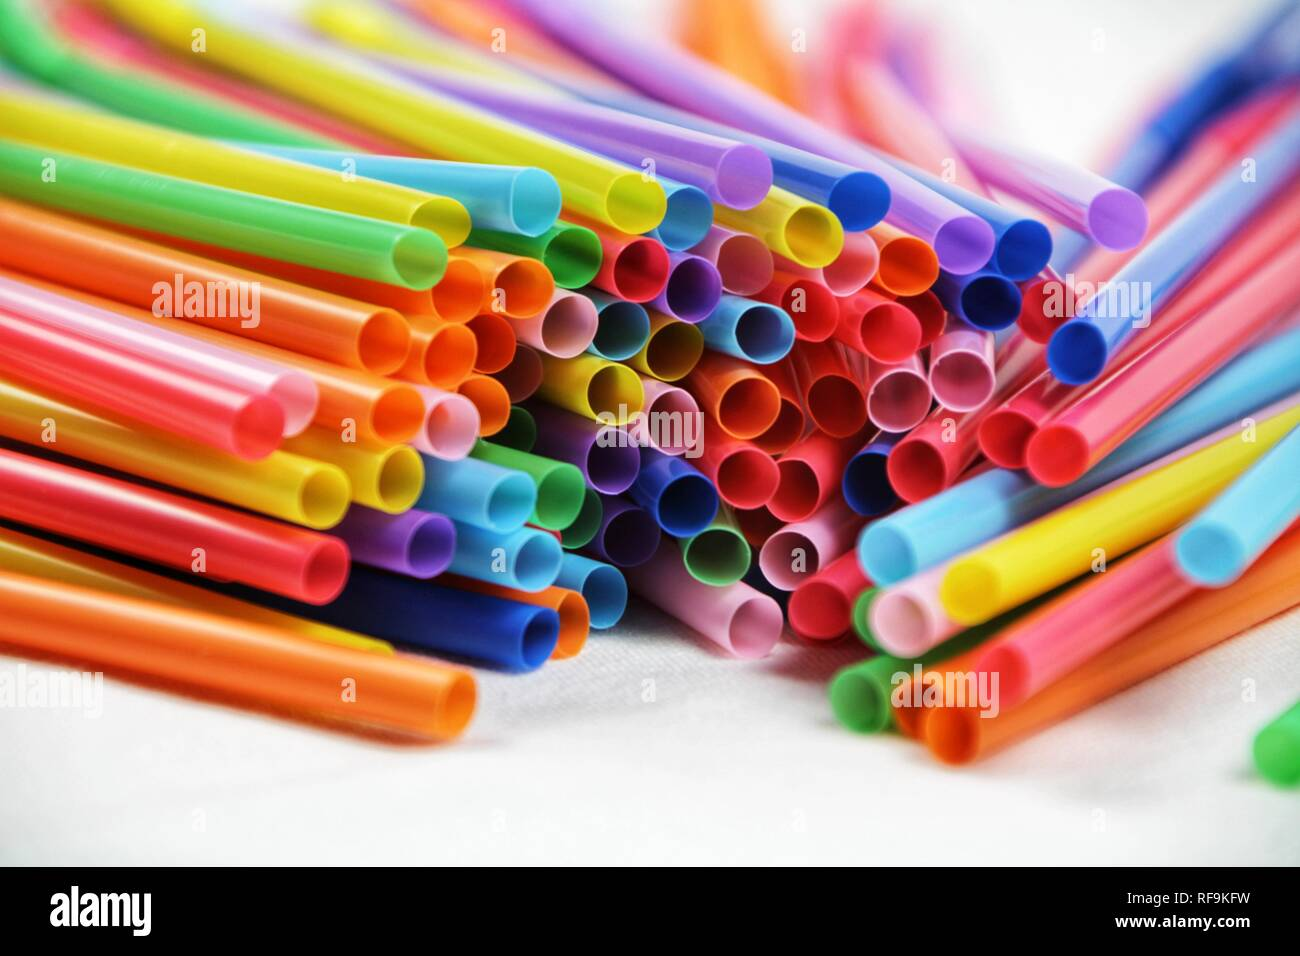 Colorful plastic drinking straws close up white background - Stock Image